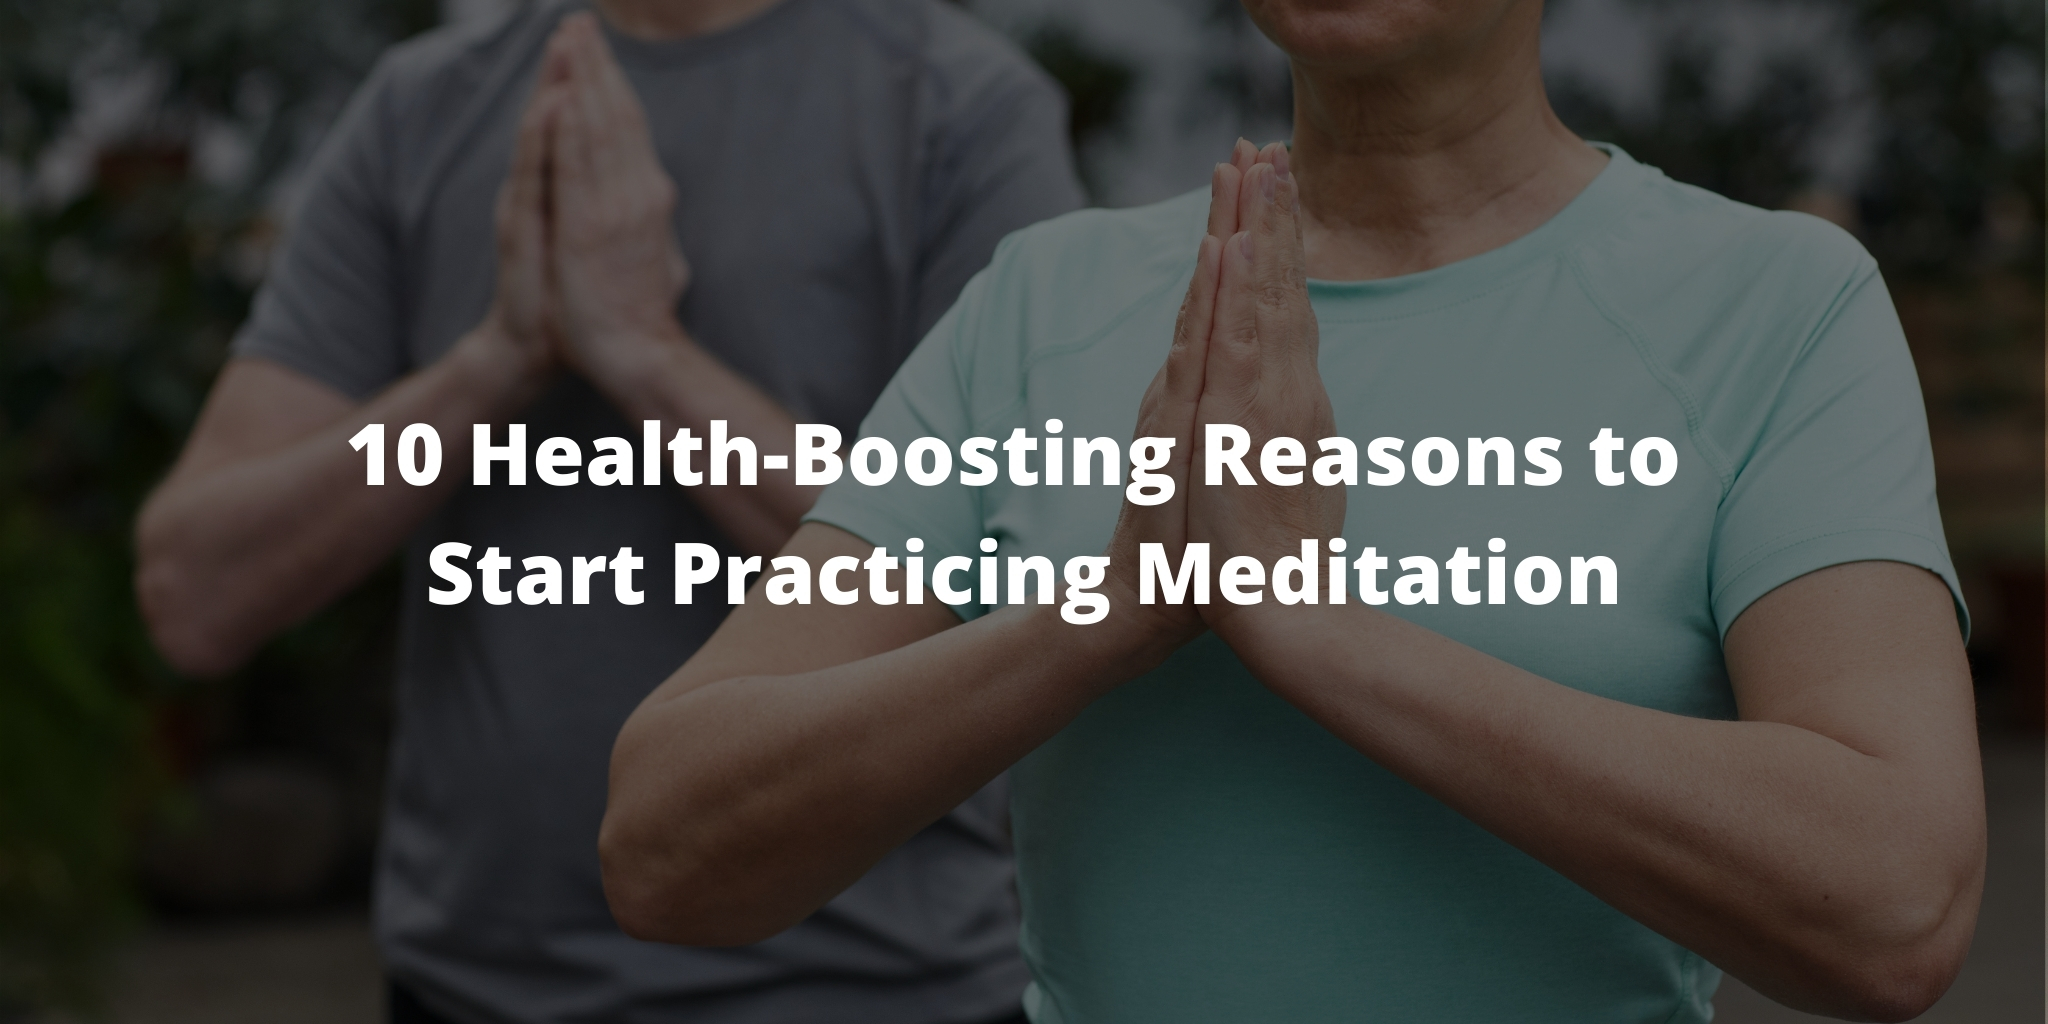 10 Health-Boosting Reasons to Start Practicing Meditation